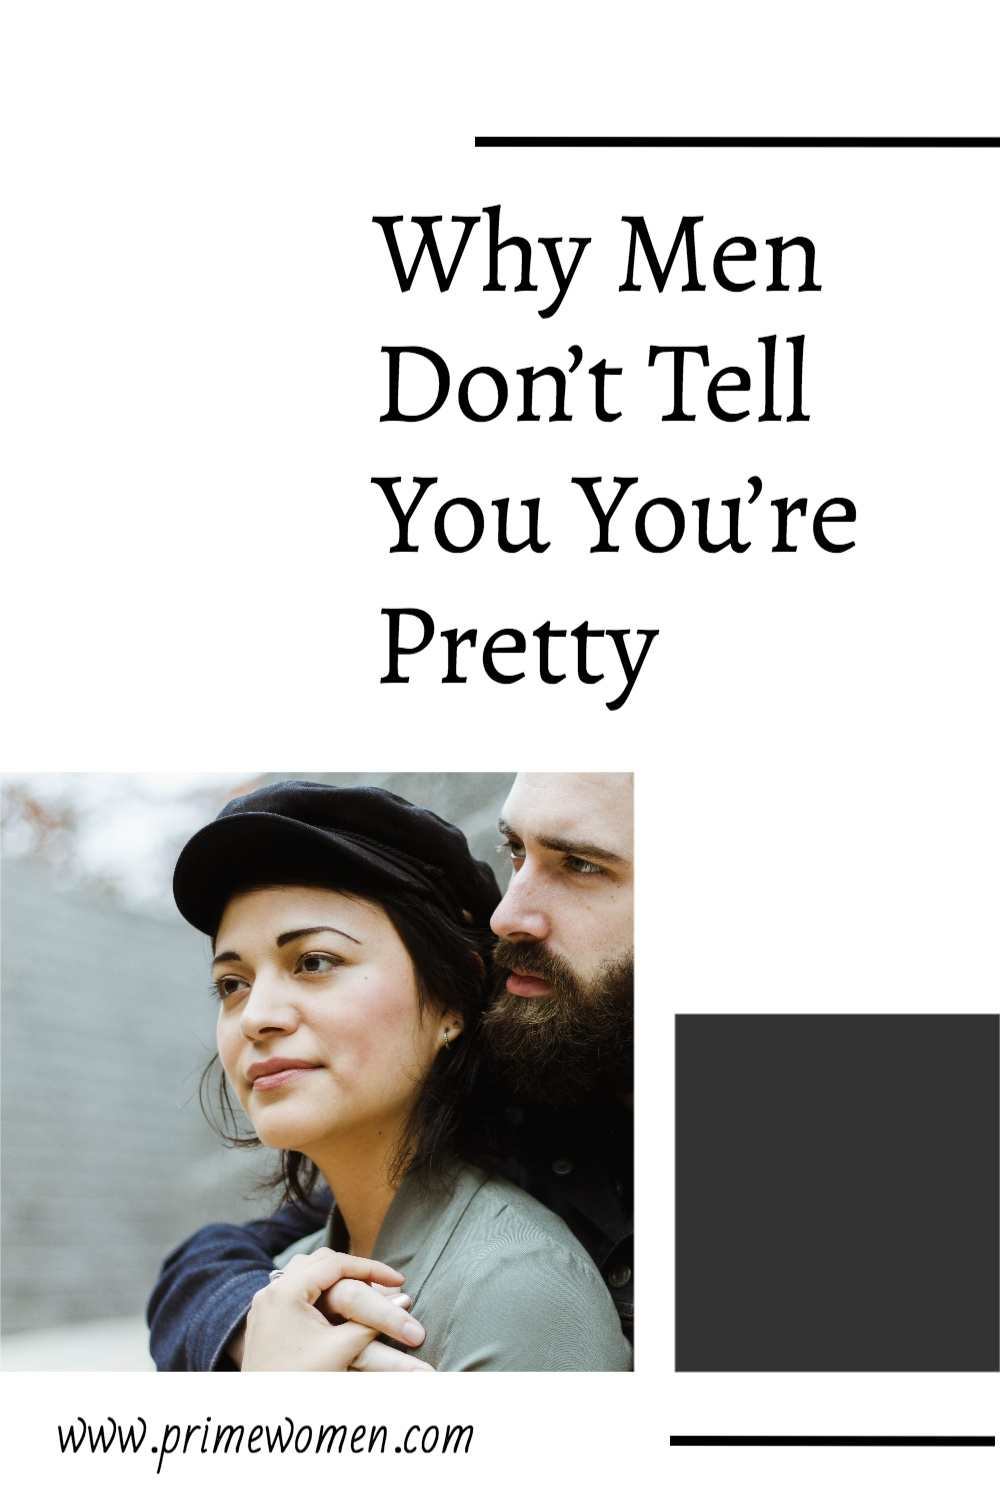 Why men don't tell you you're pretty